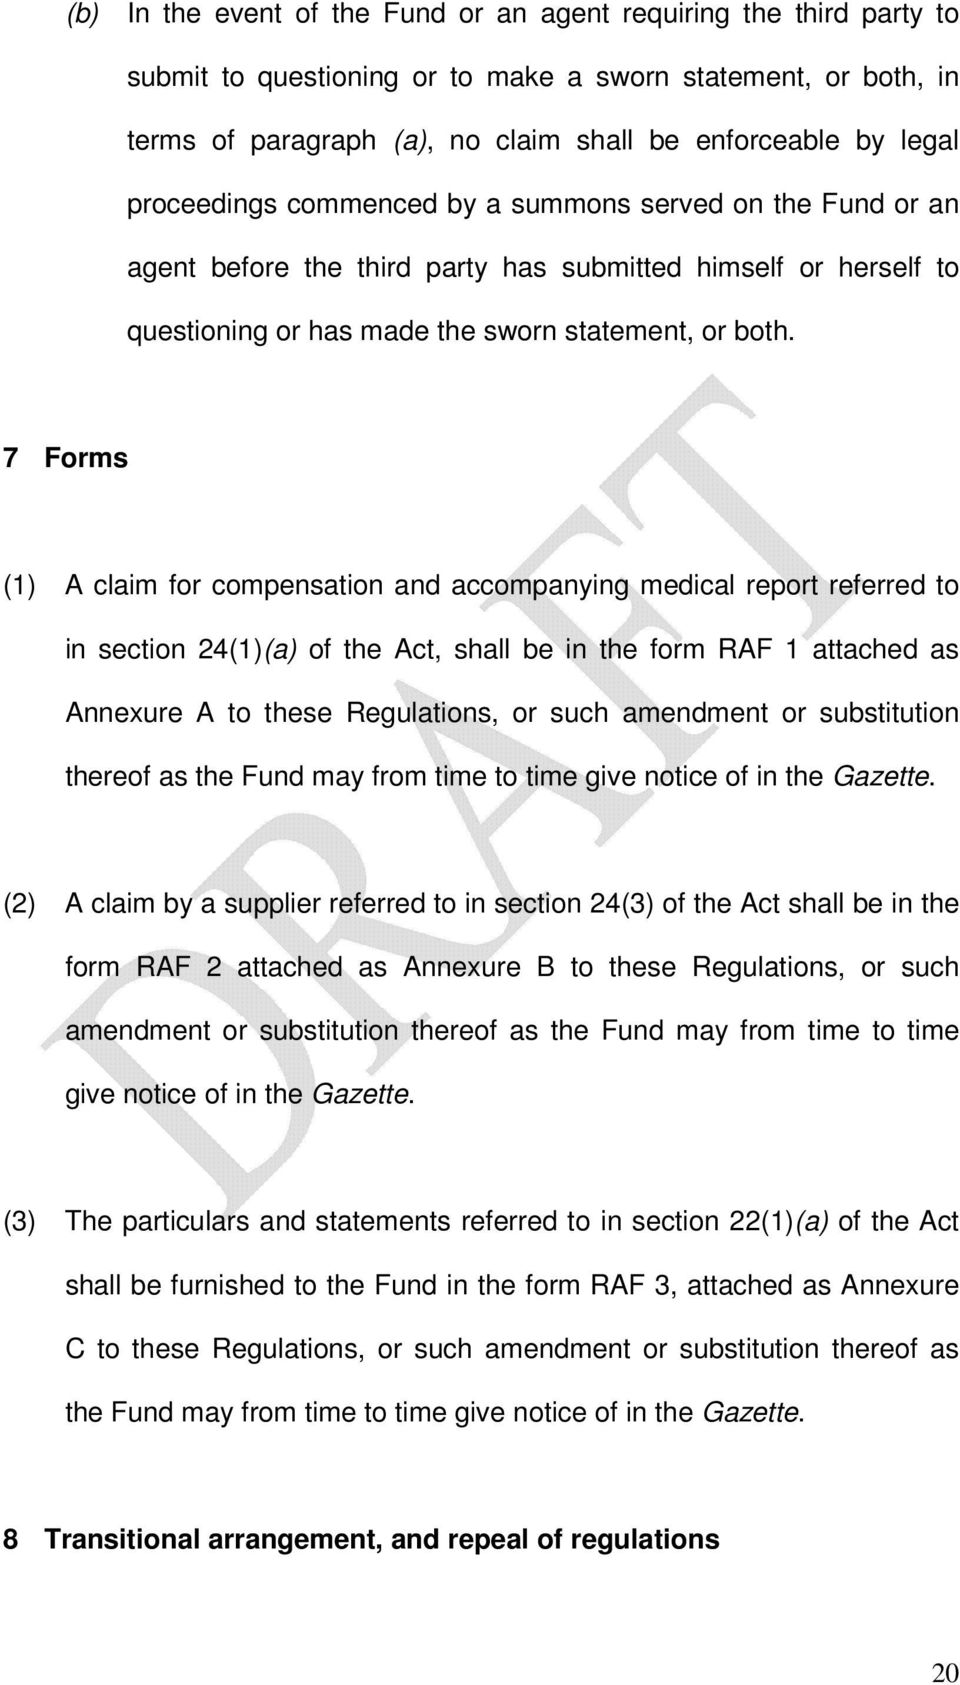 7 Forms (1) A claim for compensation and accompanying medical report referred to in section 24(1)(a) of the Act, shall be in the form RAF 1 attached as Annexure A to these Regulations, or such